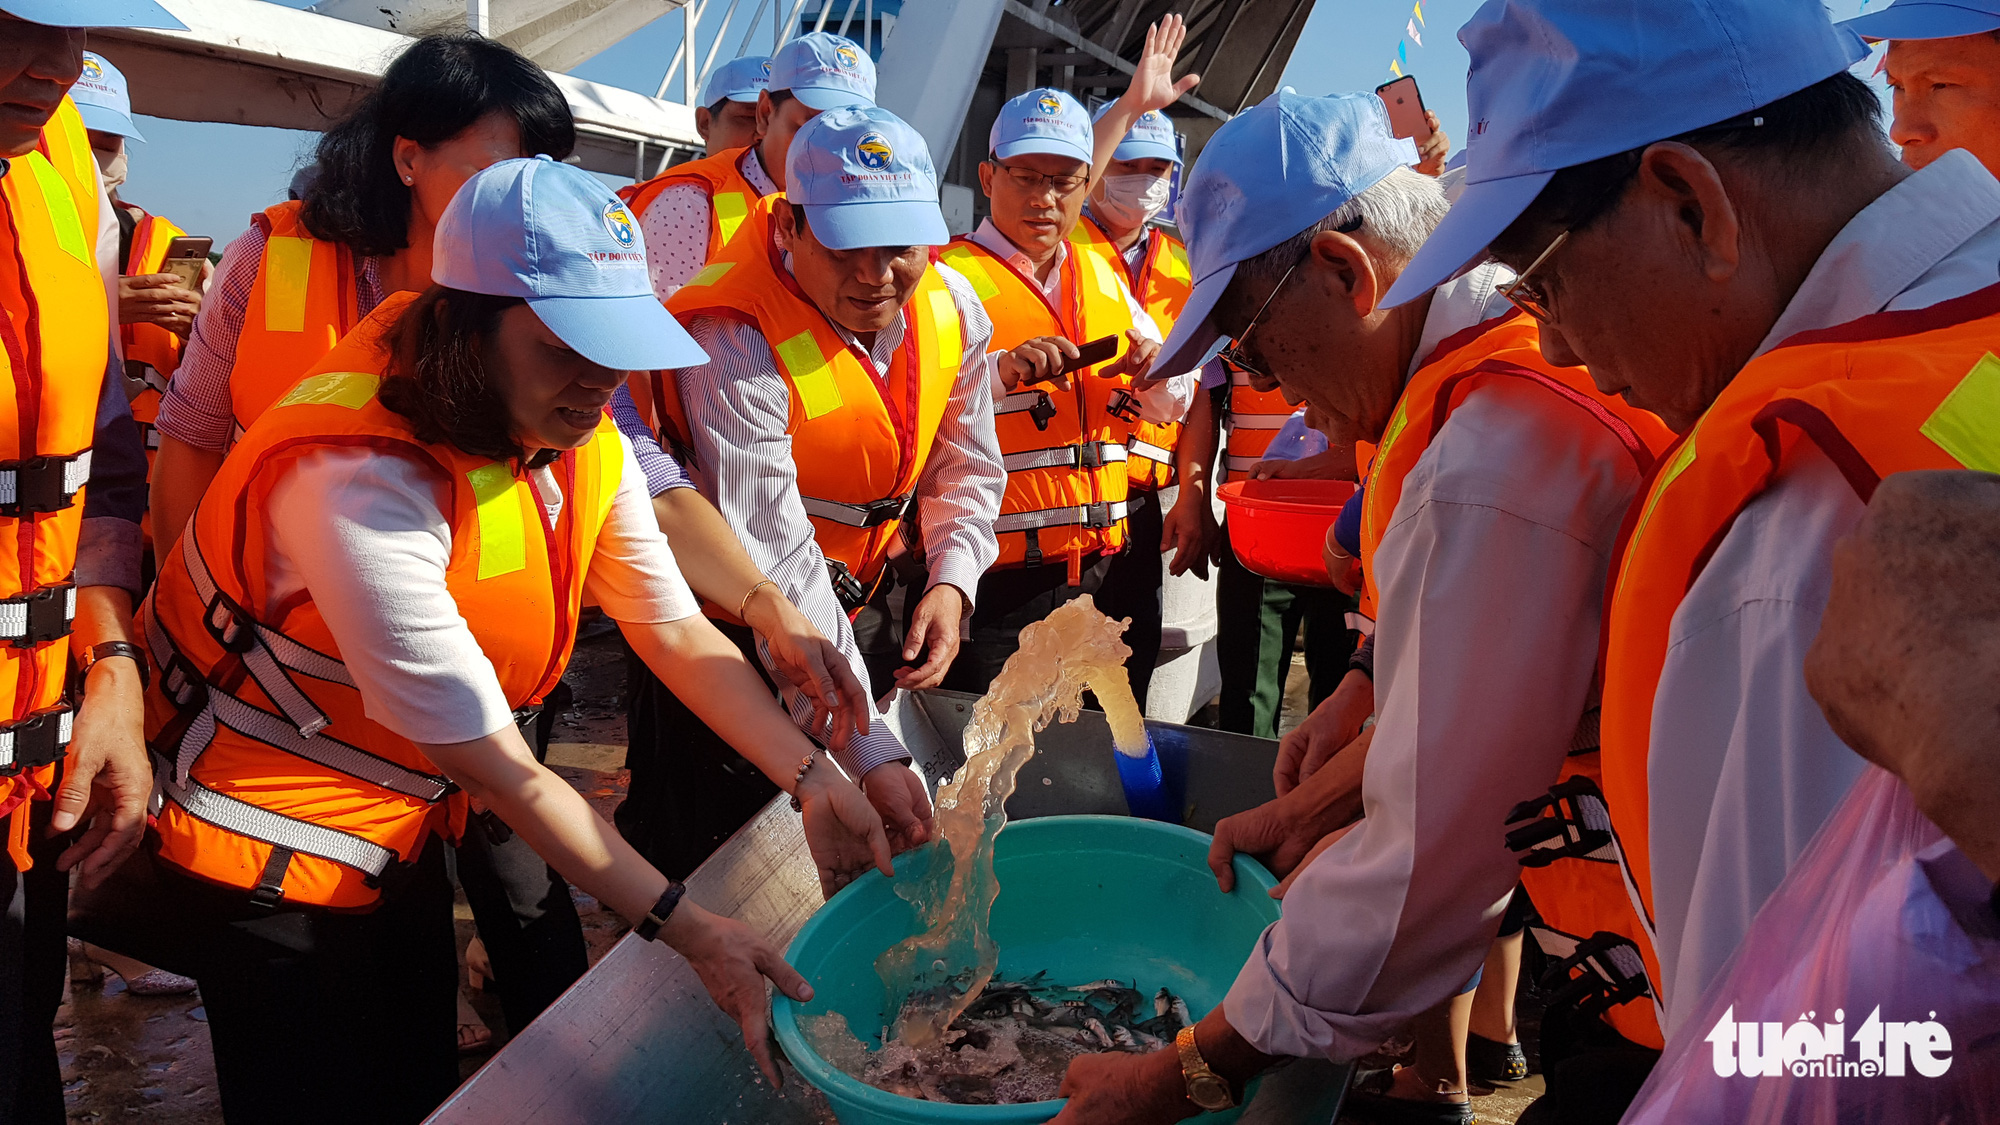 Nguyen Thi Thu Nguyet (L), deputy head of Vietnam's Directorate of Fisheries, and officials release fishes to regenerate aquatic resources in Vam Nao River in An Giang Province, Vietnam, October 31, 2020. Photo: Buu Dau / Tuoi Tre